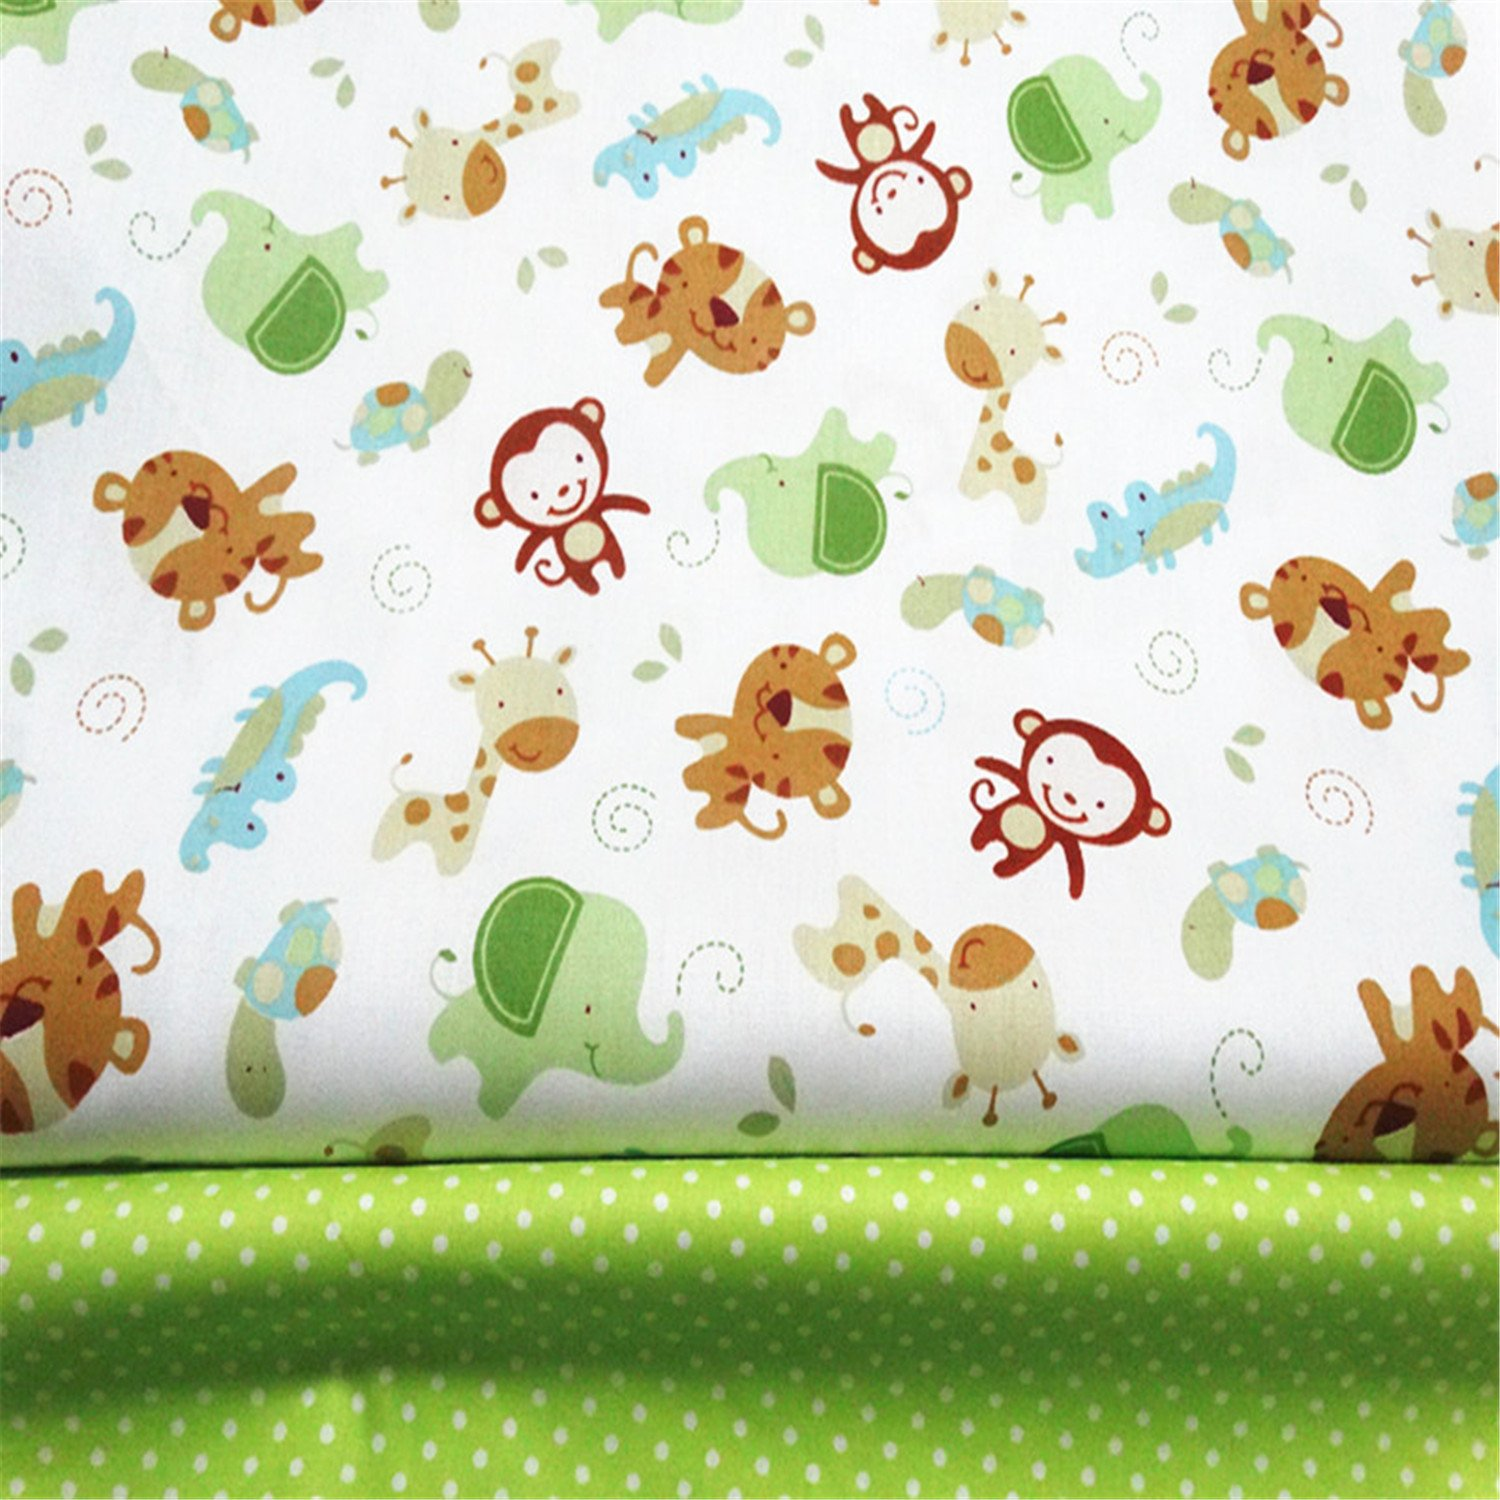 Amazon.com: FUYA 2pieces160cmx100cm Monkey Dots Cotton Fabric Patchwork Tissue Cloth Handmade DIY Quilting Sewing BabyΧldren Sheets Dress Material